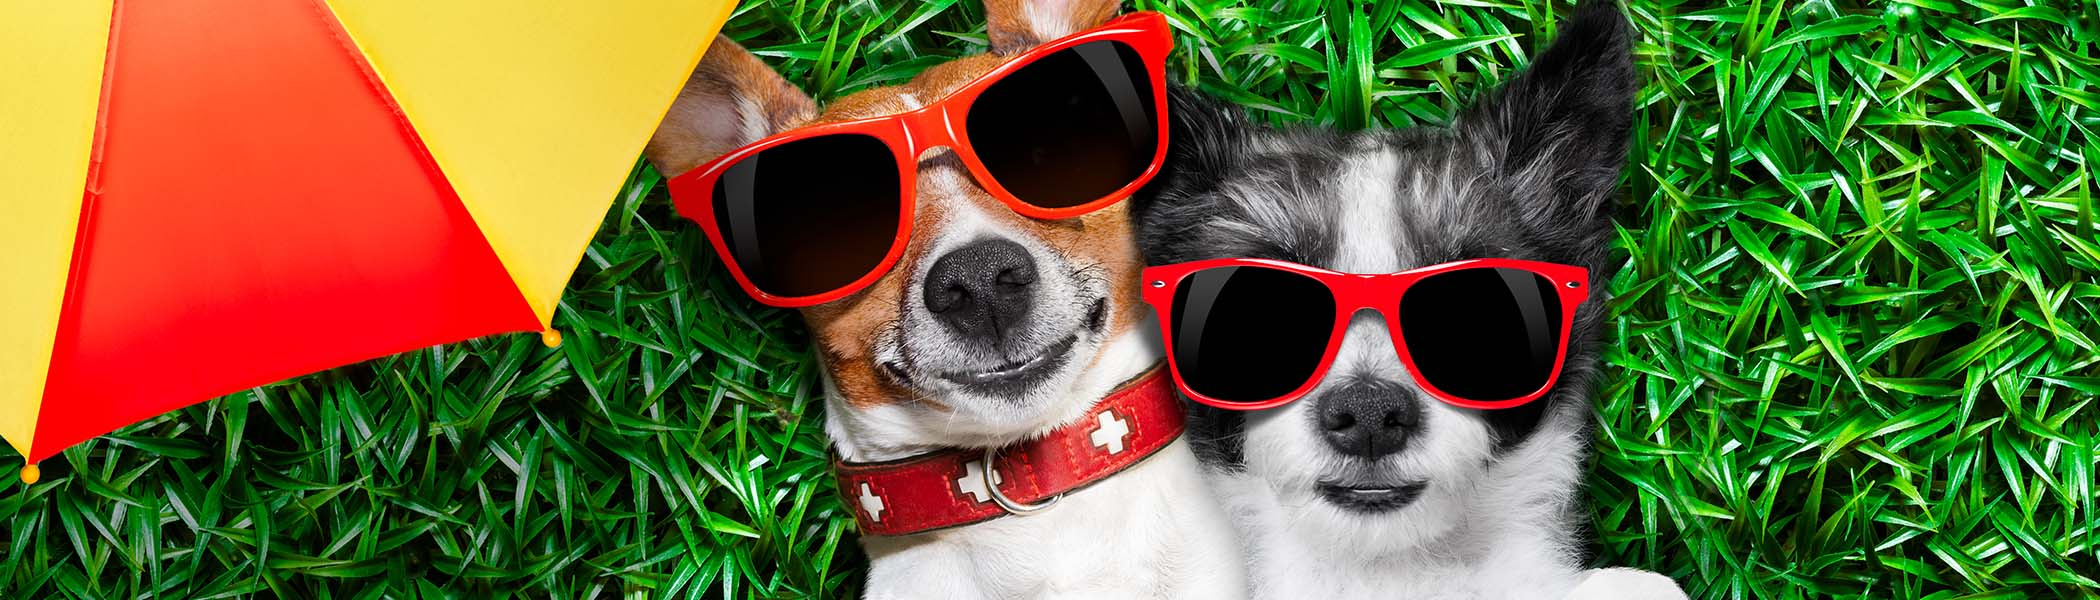 Pet Places - Summer Fun Dogs